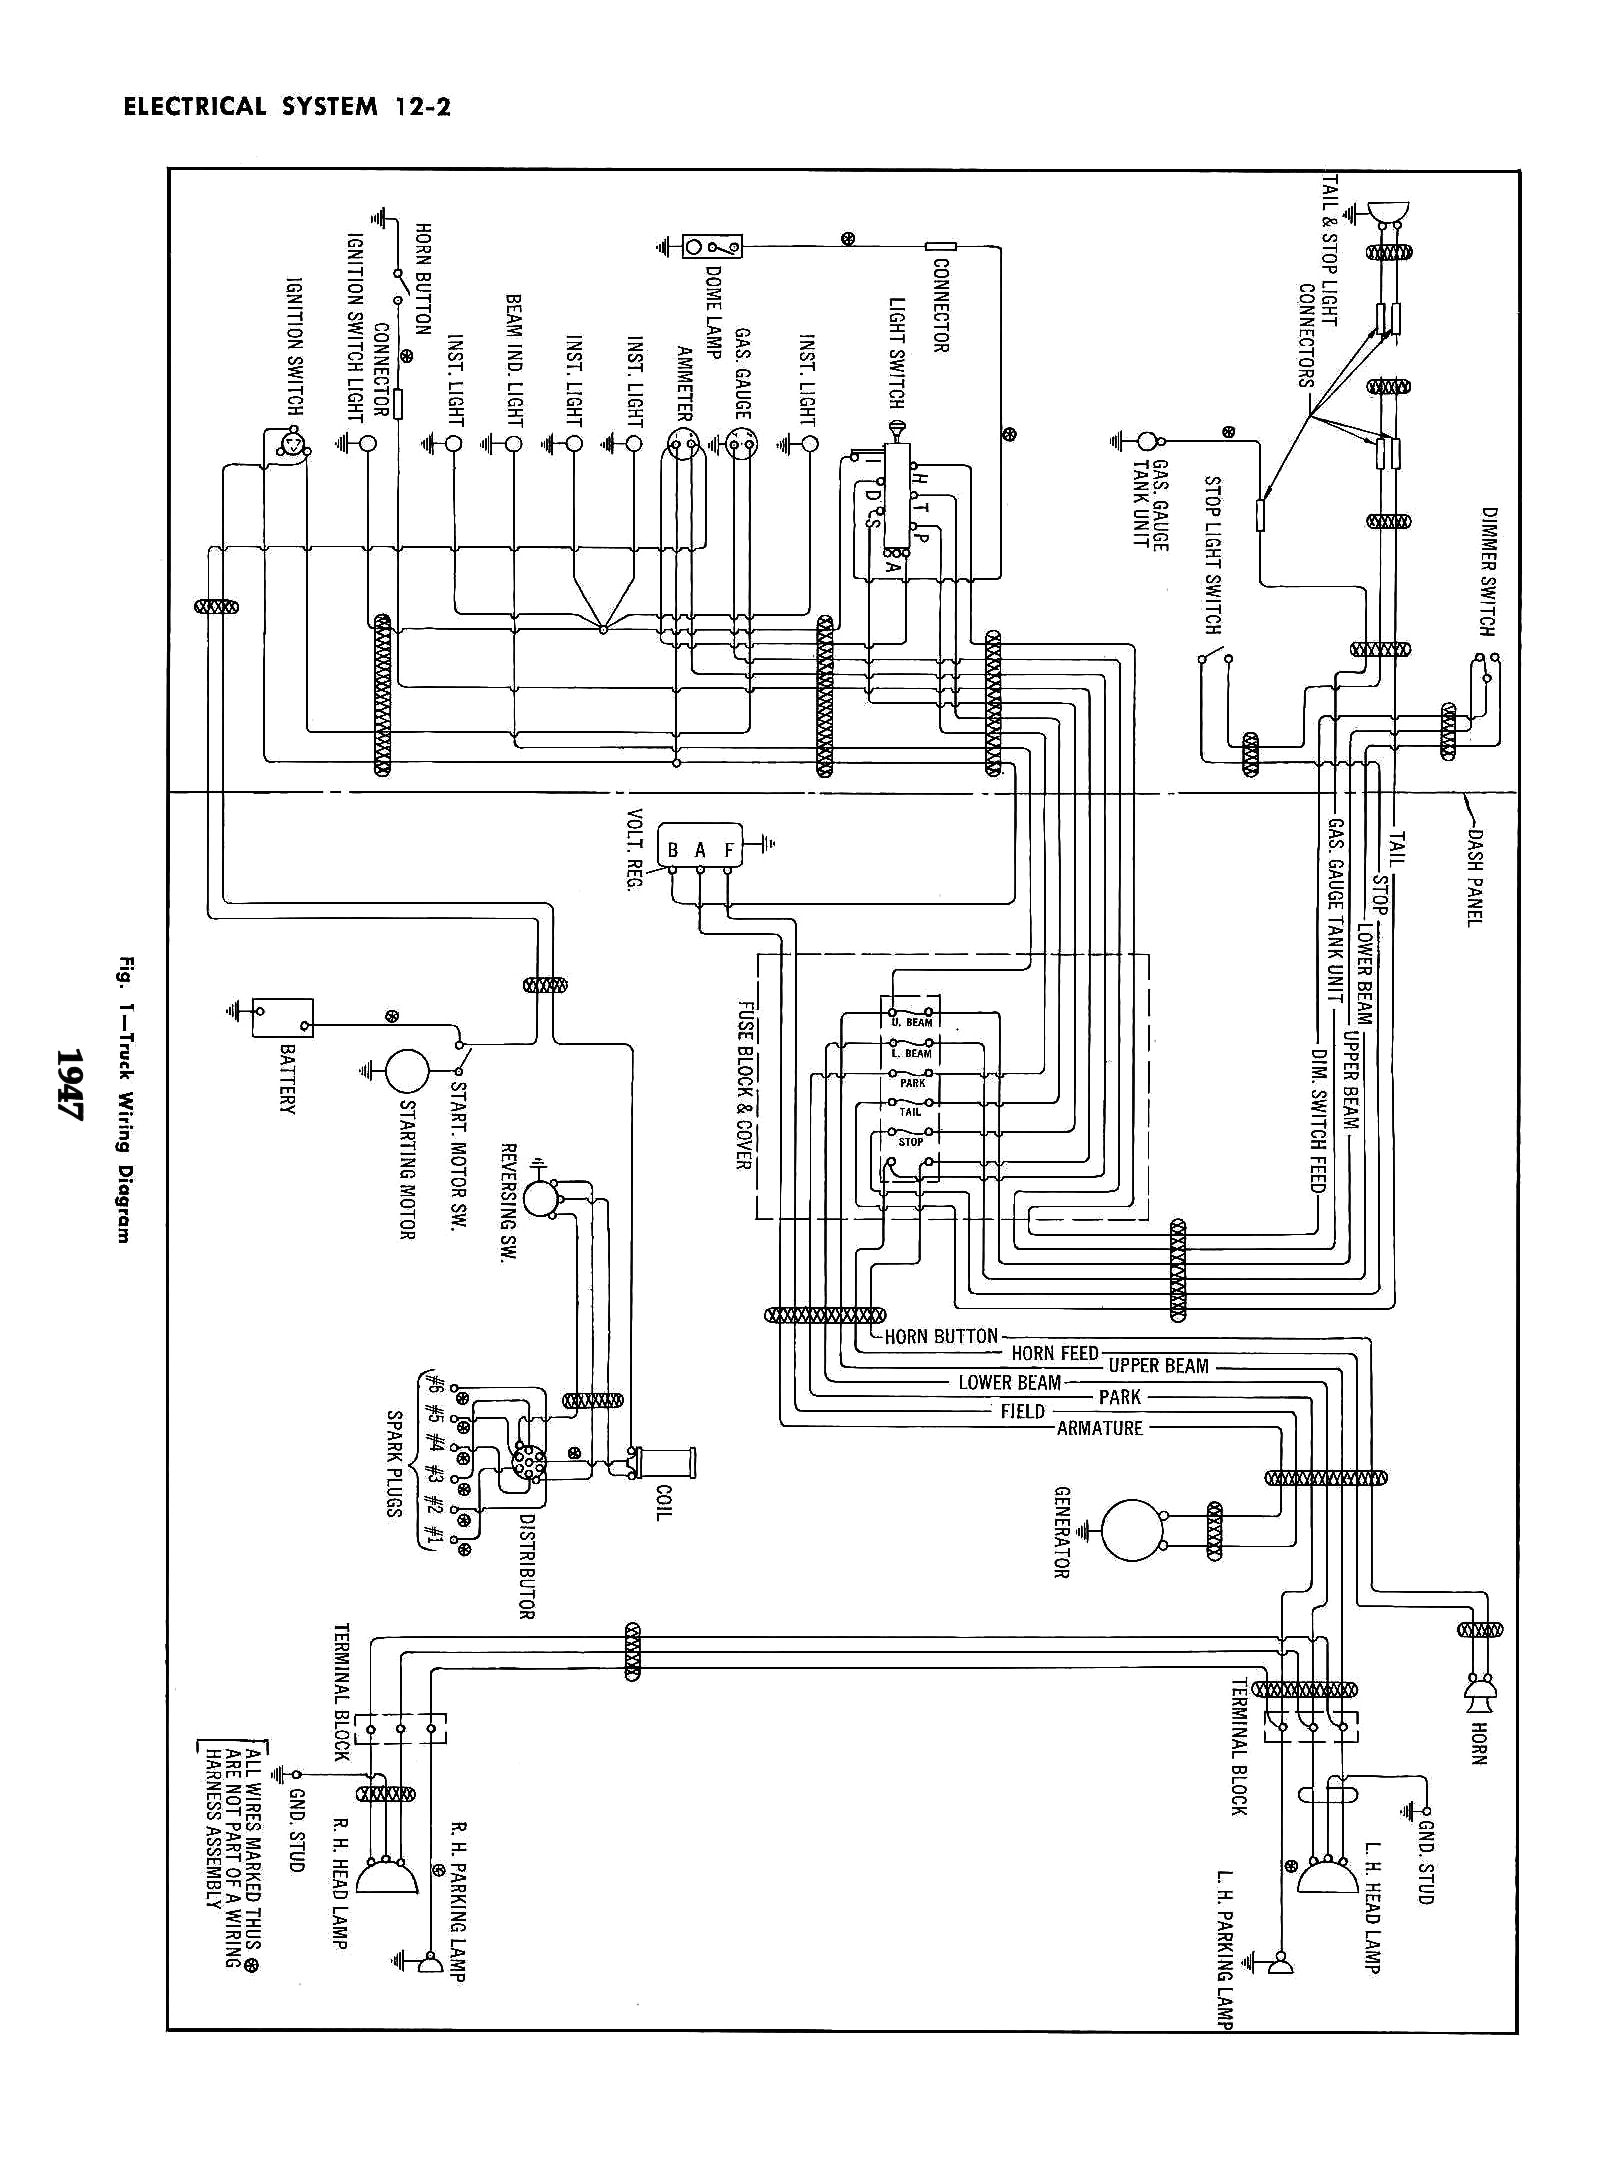 Hardtop Wiring Diagram 1953 Get Free Image About Wiring Diagram